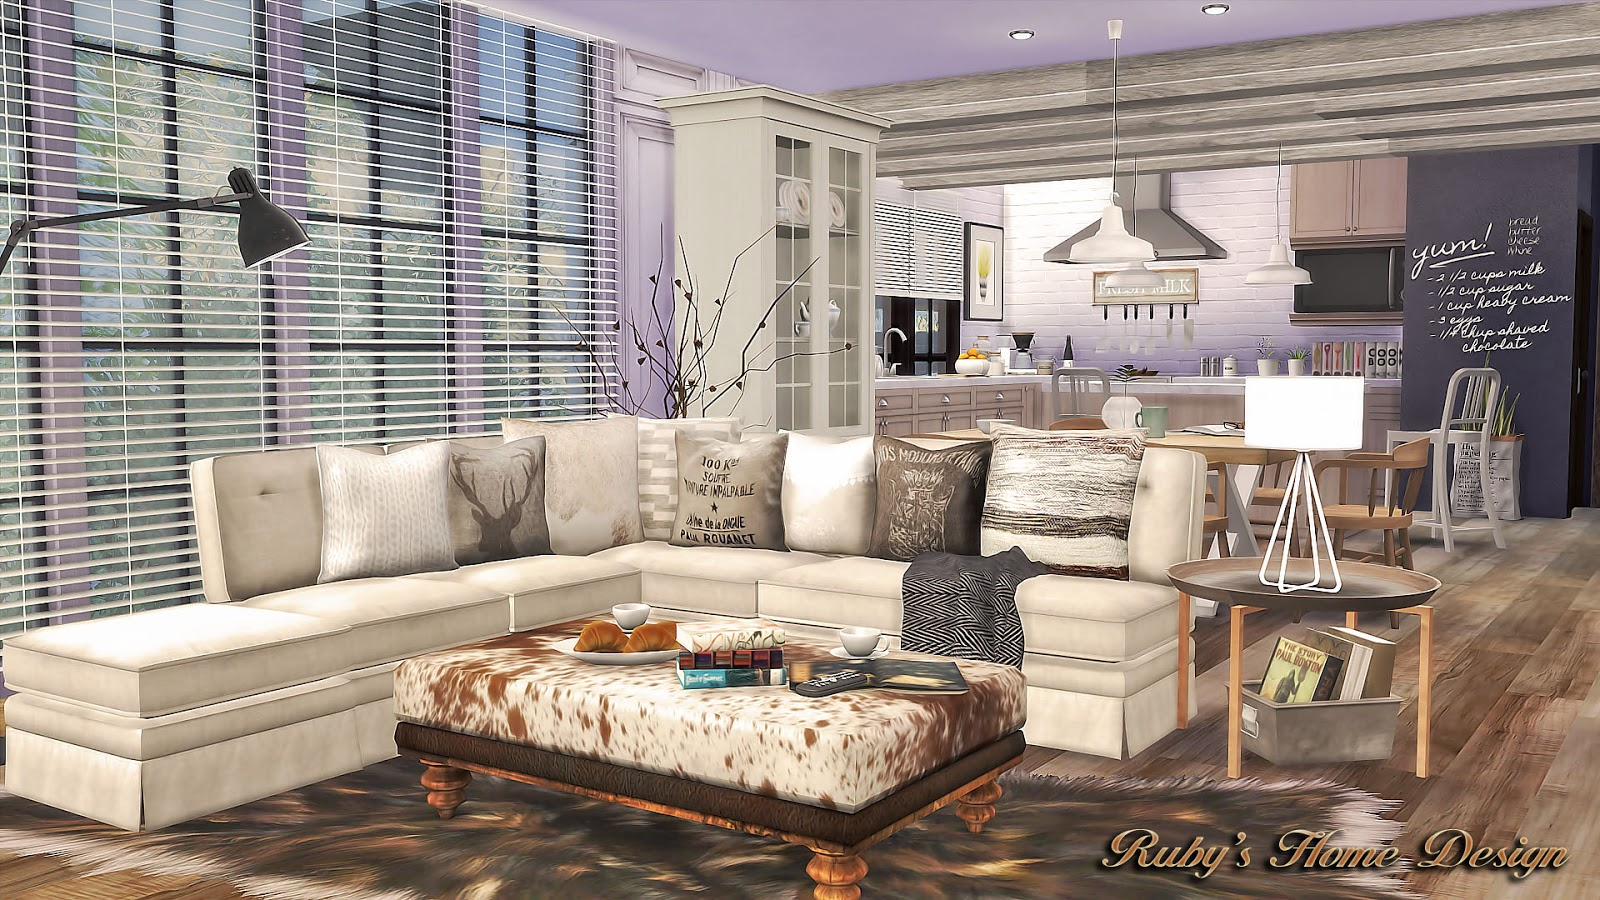 Sims4 Neutral Chic 現代鄉村宅 Fixed Seasons Expansion Pack